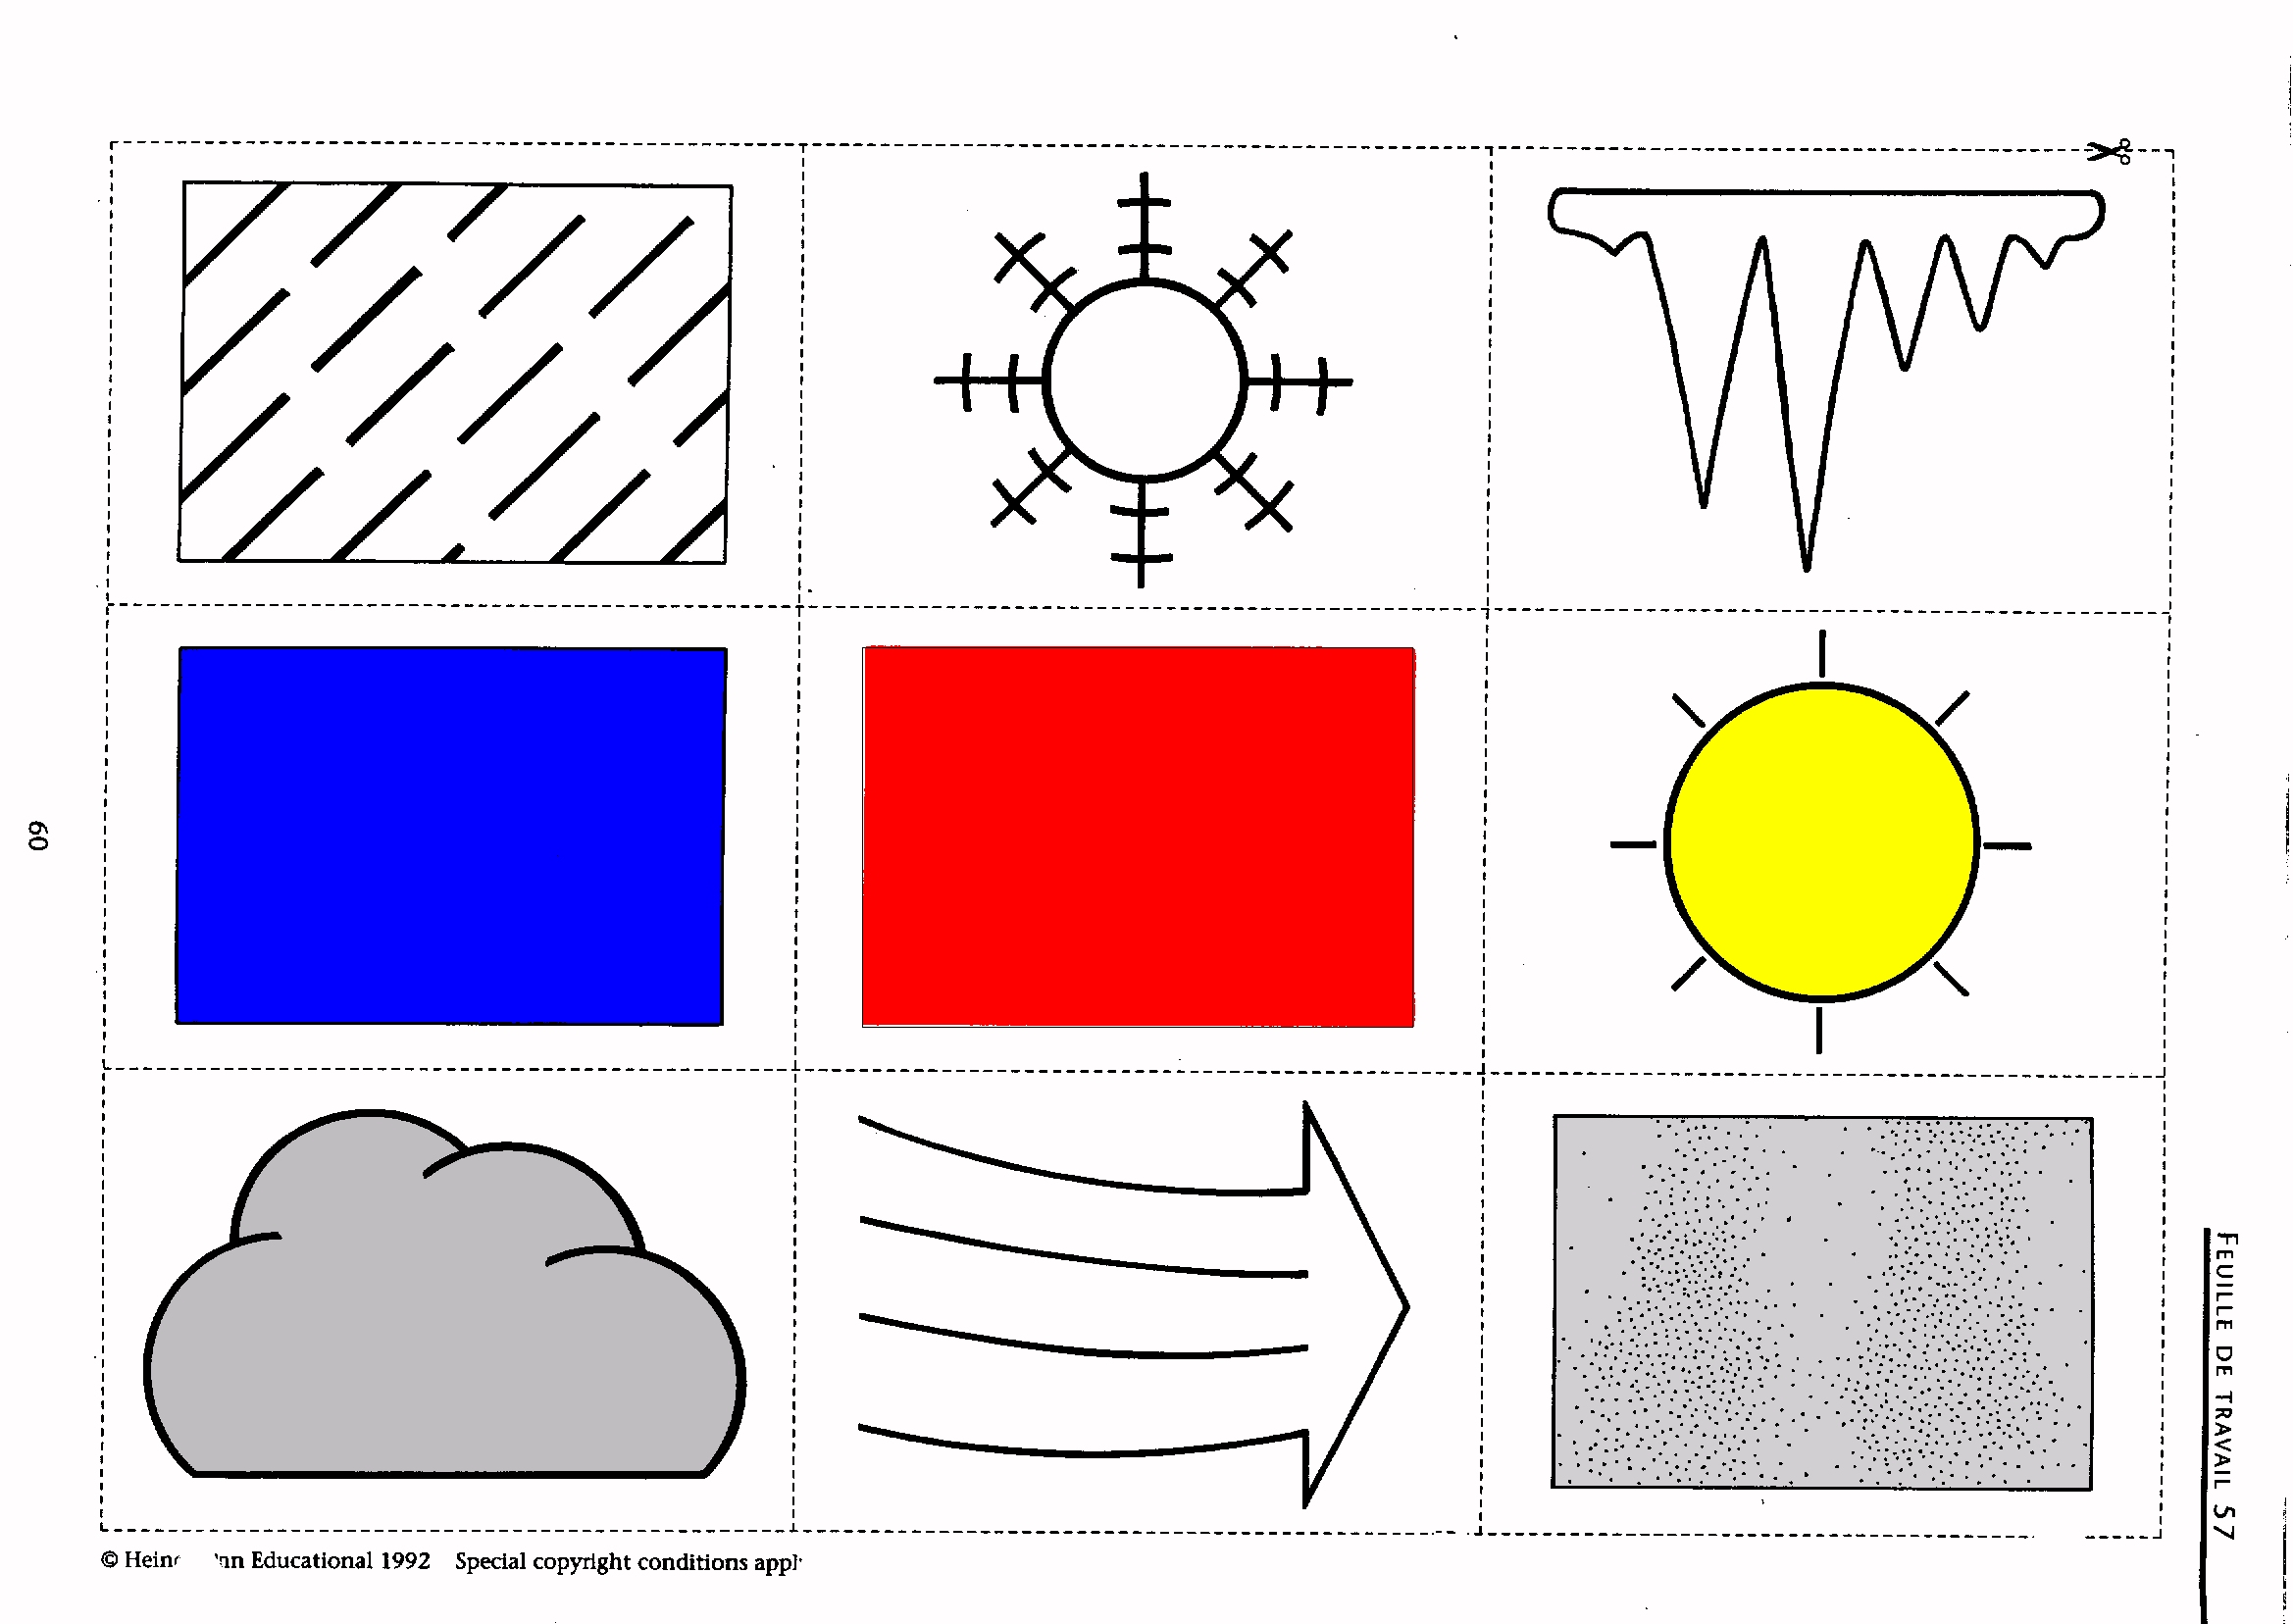 Free Worksheet Learning French Worksheets french ks3 worksheets weather symbols jpg 728 kb